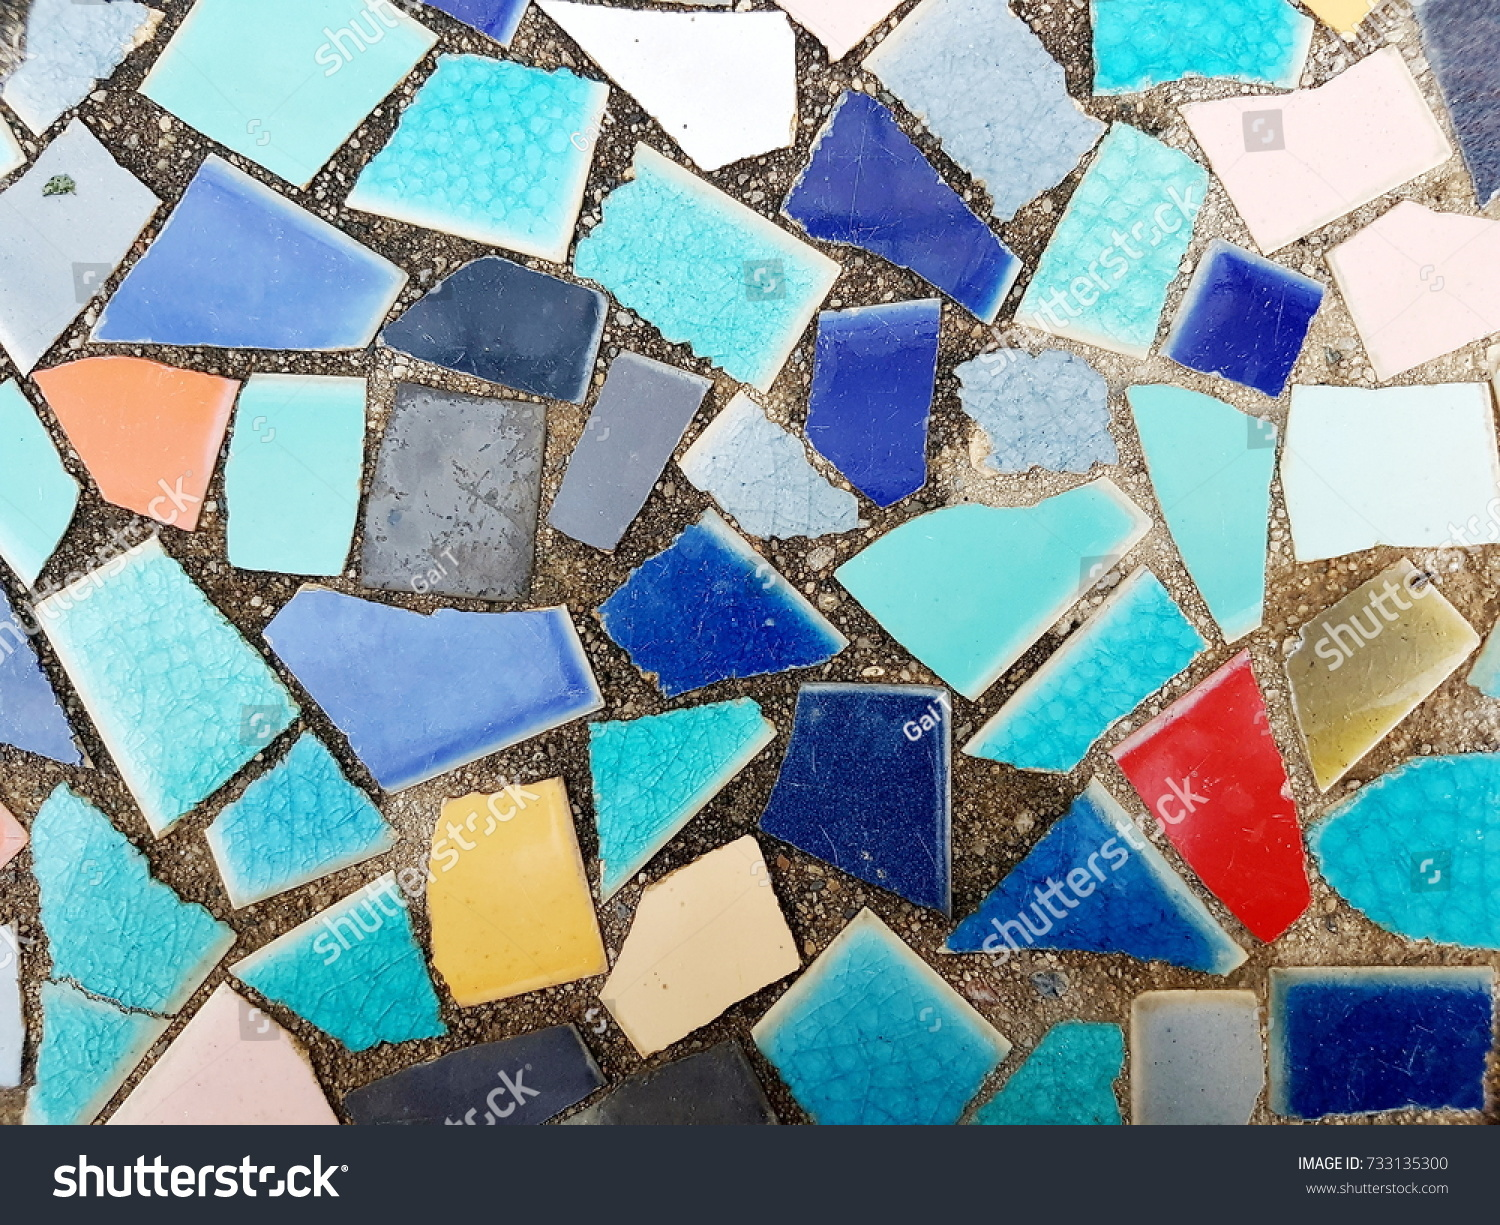 Colorful Ceramic Tile Patterns Stock Photo 733135300 - Shutterstock